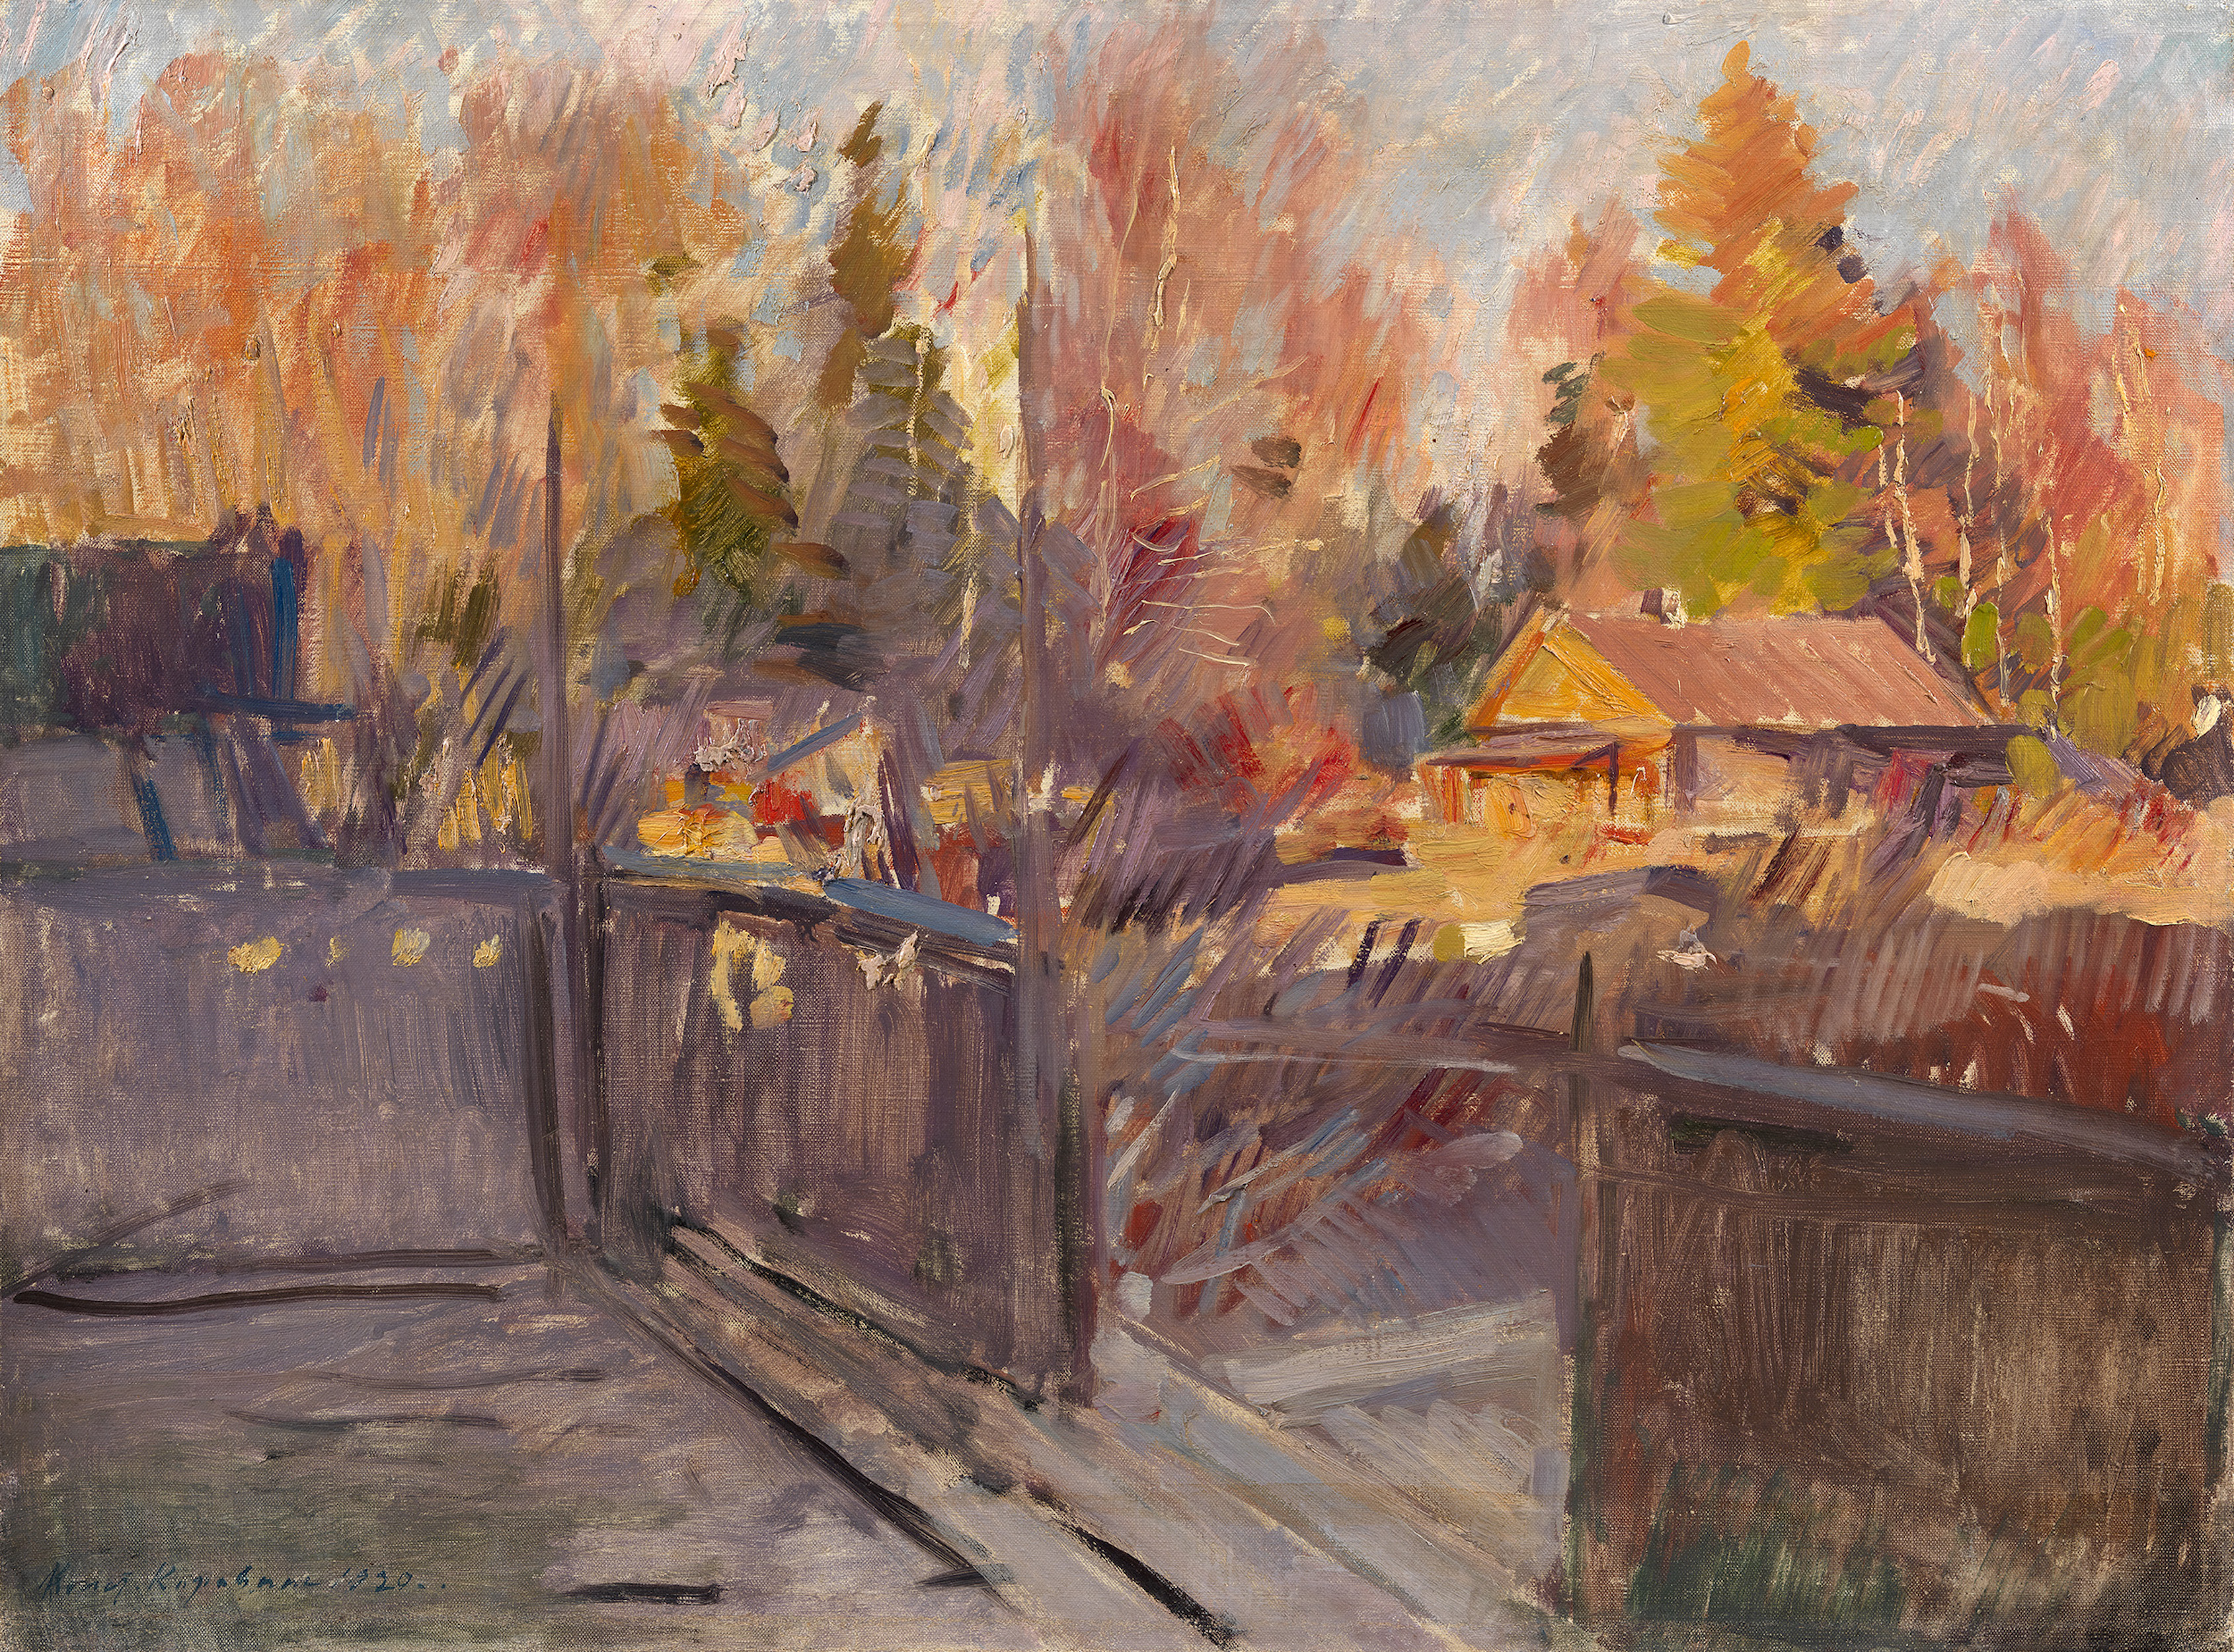 Lot 20 Konstantin Korovin, Spring in the Village